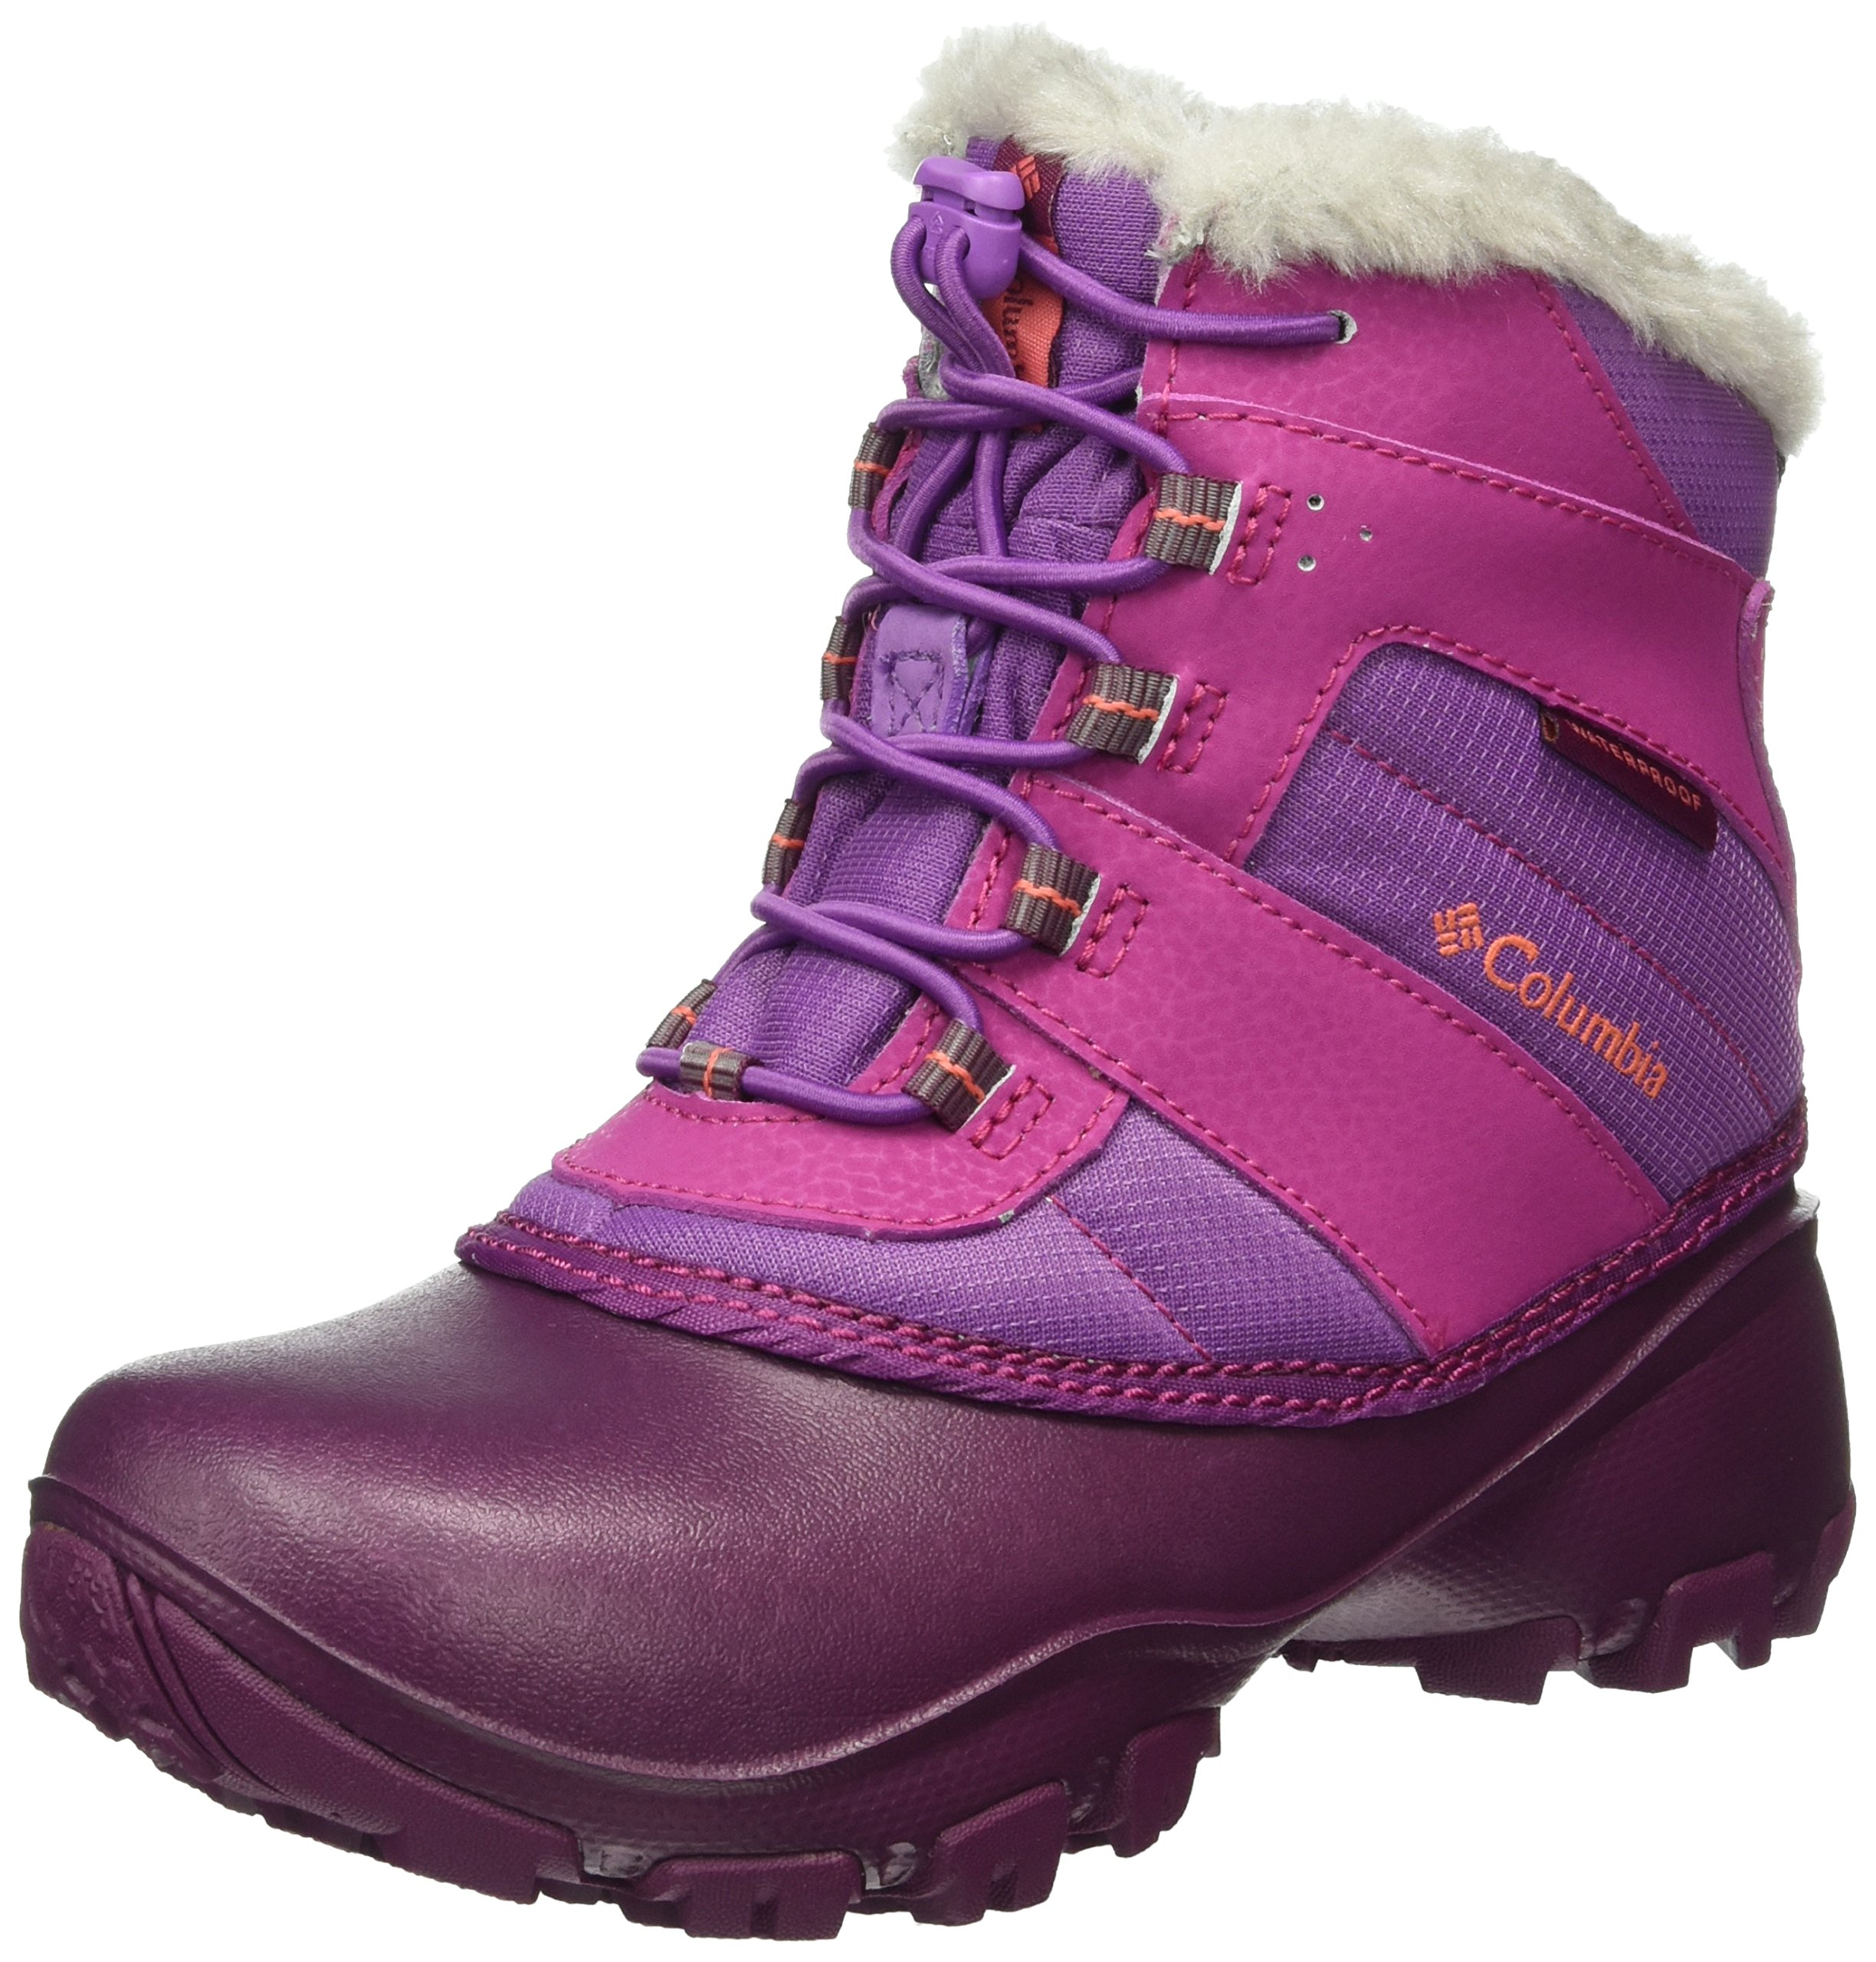 Columbia Girls' Youth Rope Tow III Waterproof Snow Boot, Northern Lights, Melonade, 6 M US Big Kid